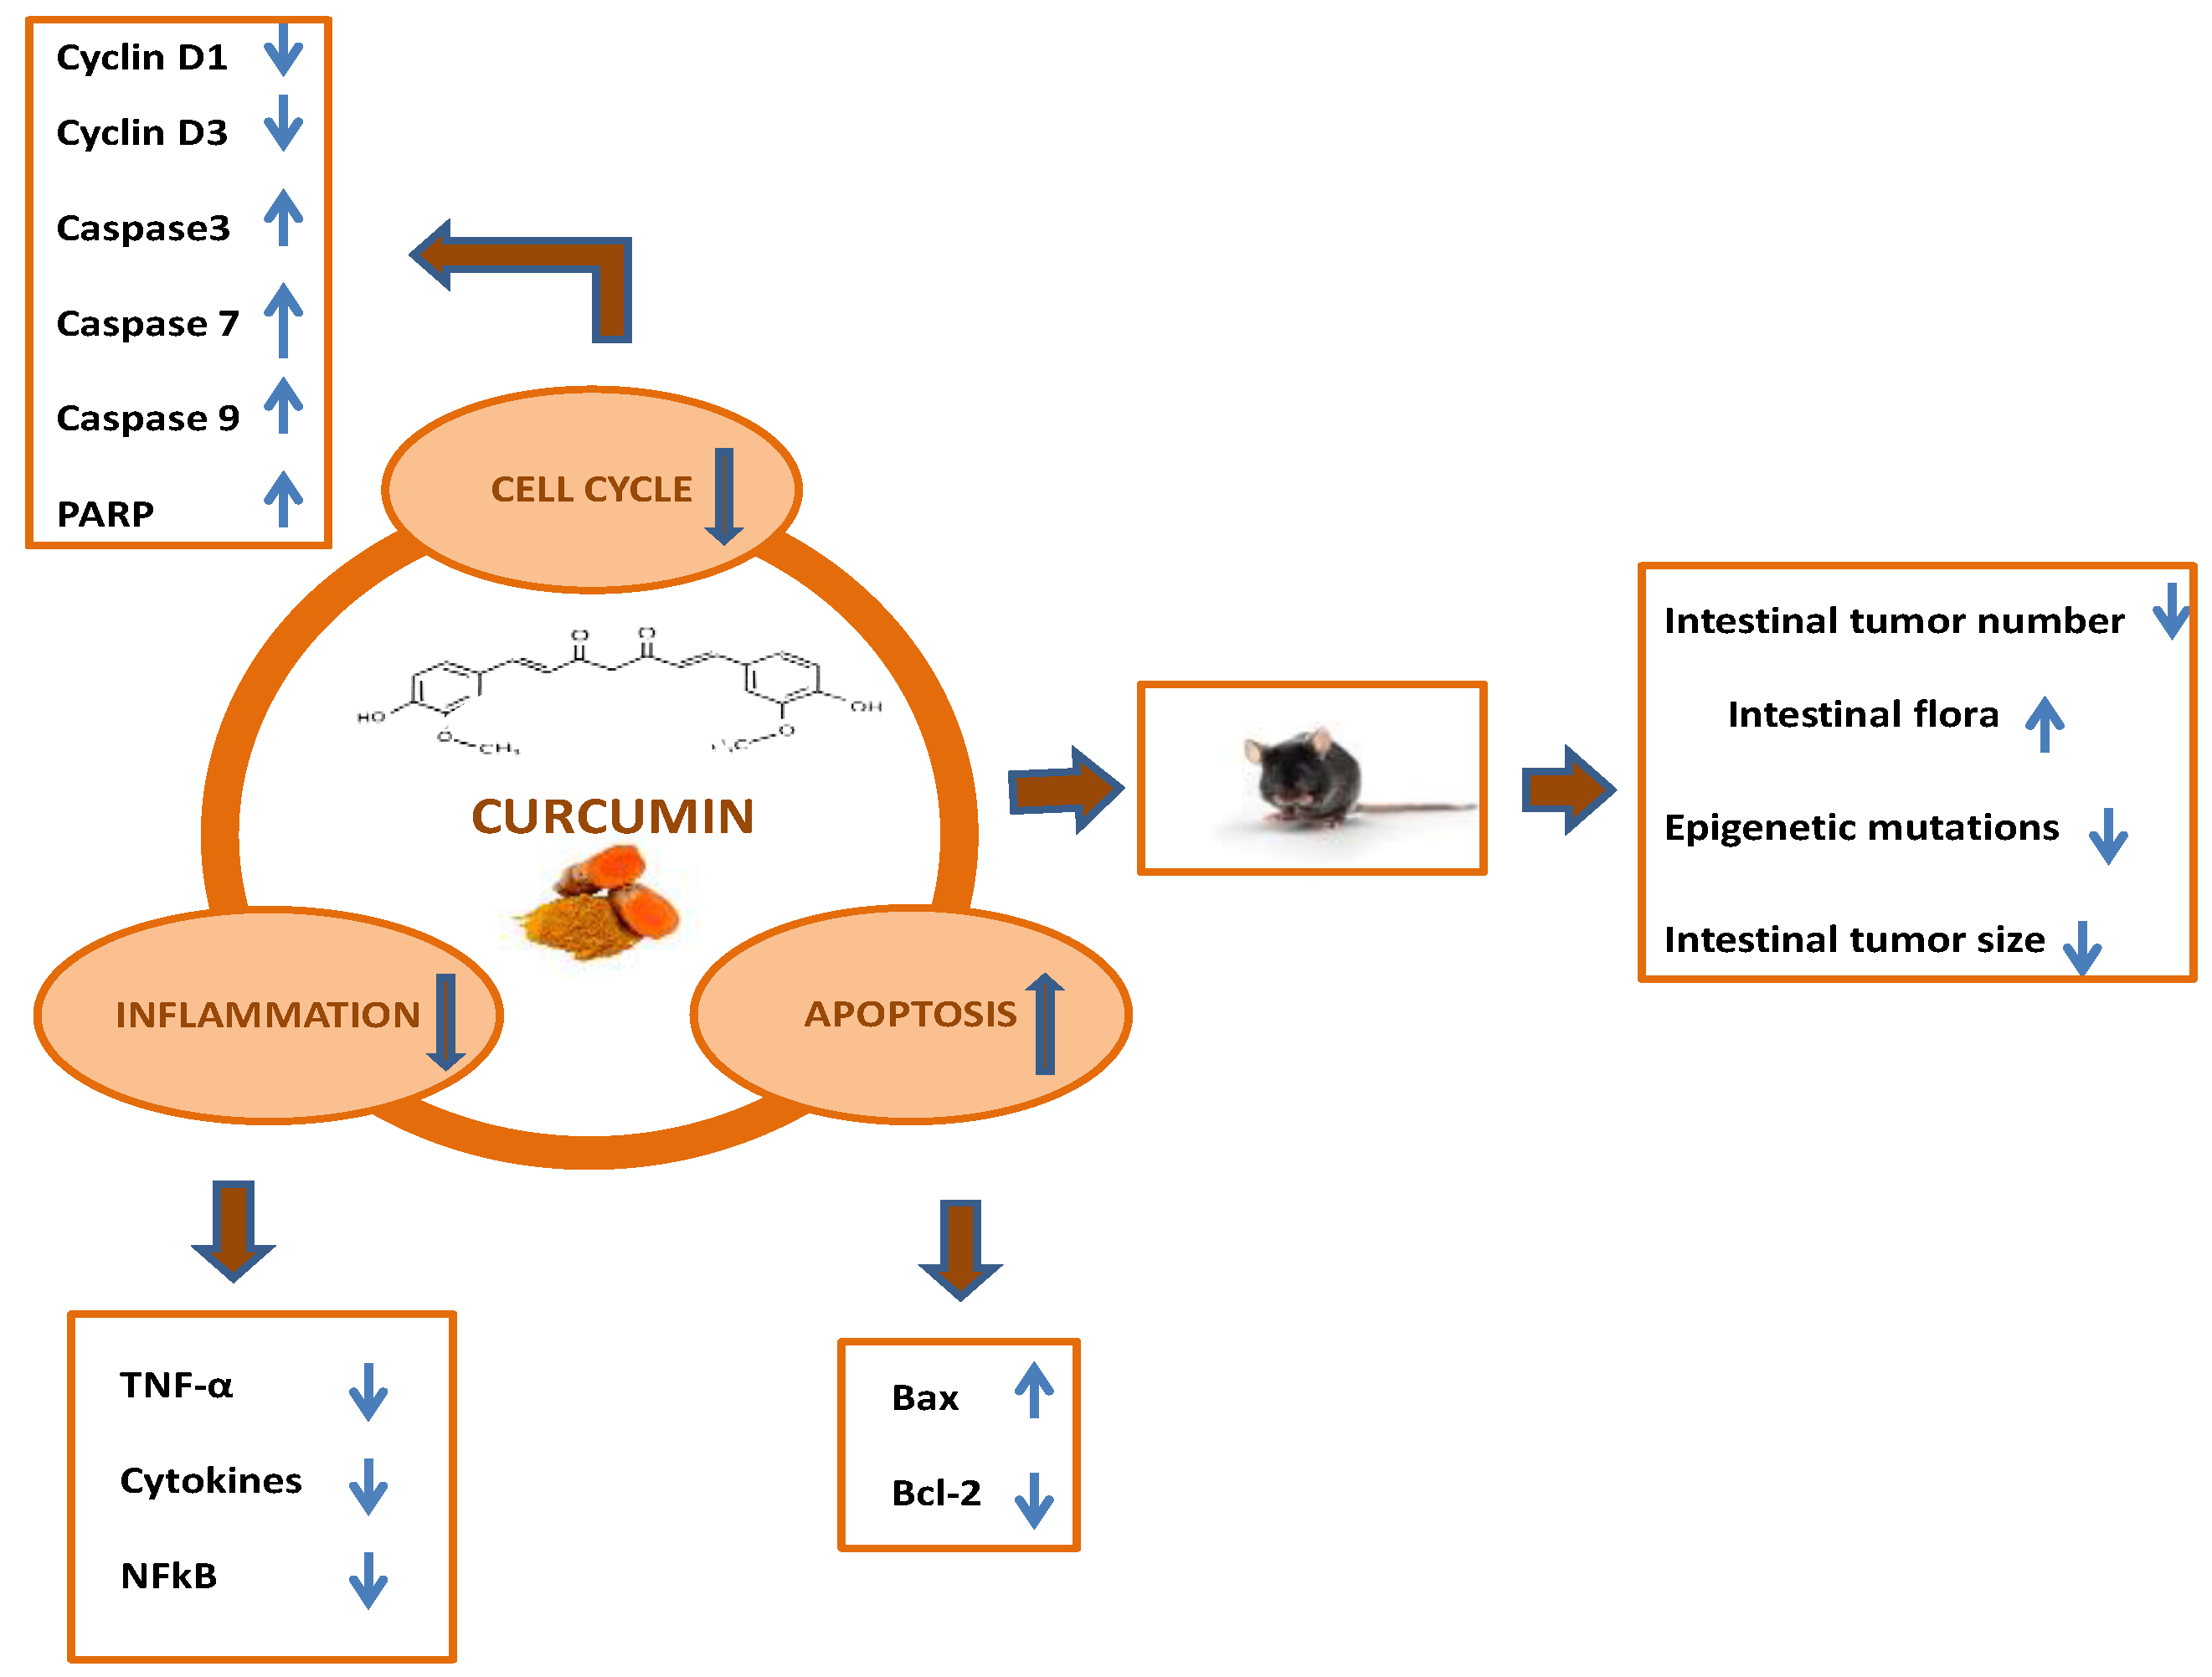 Ijms Free Full Text Curcumin And Colorectal Cancer From Basic To Clinical Evidences Html